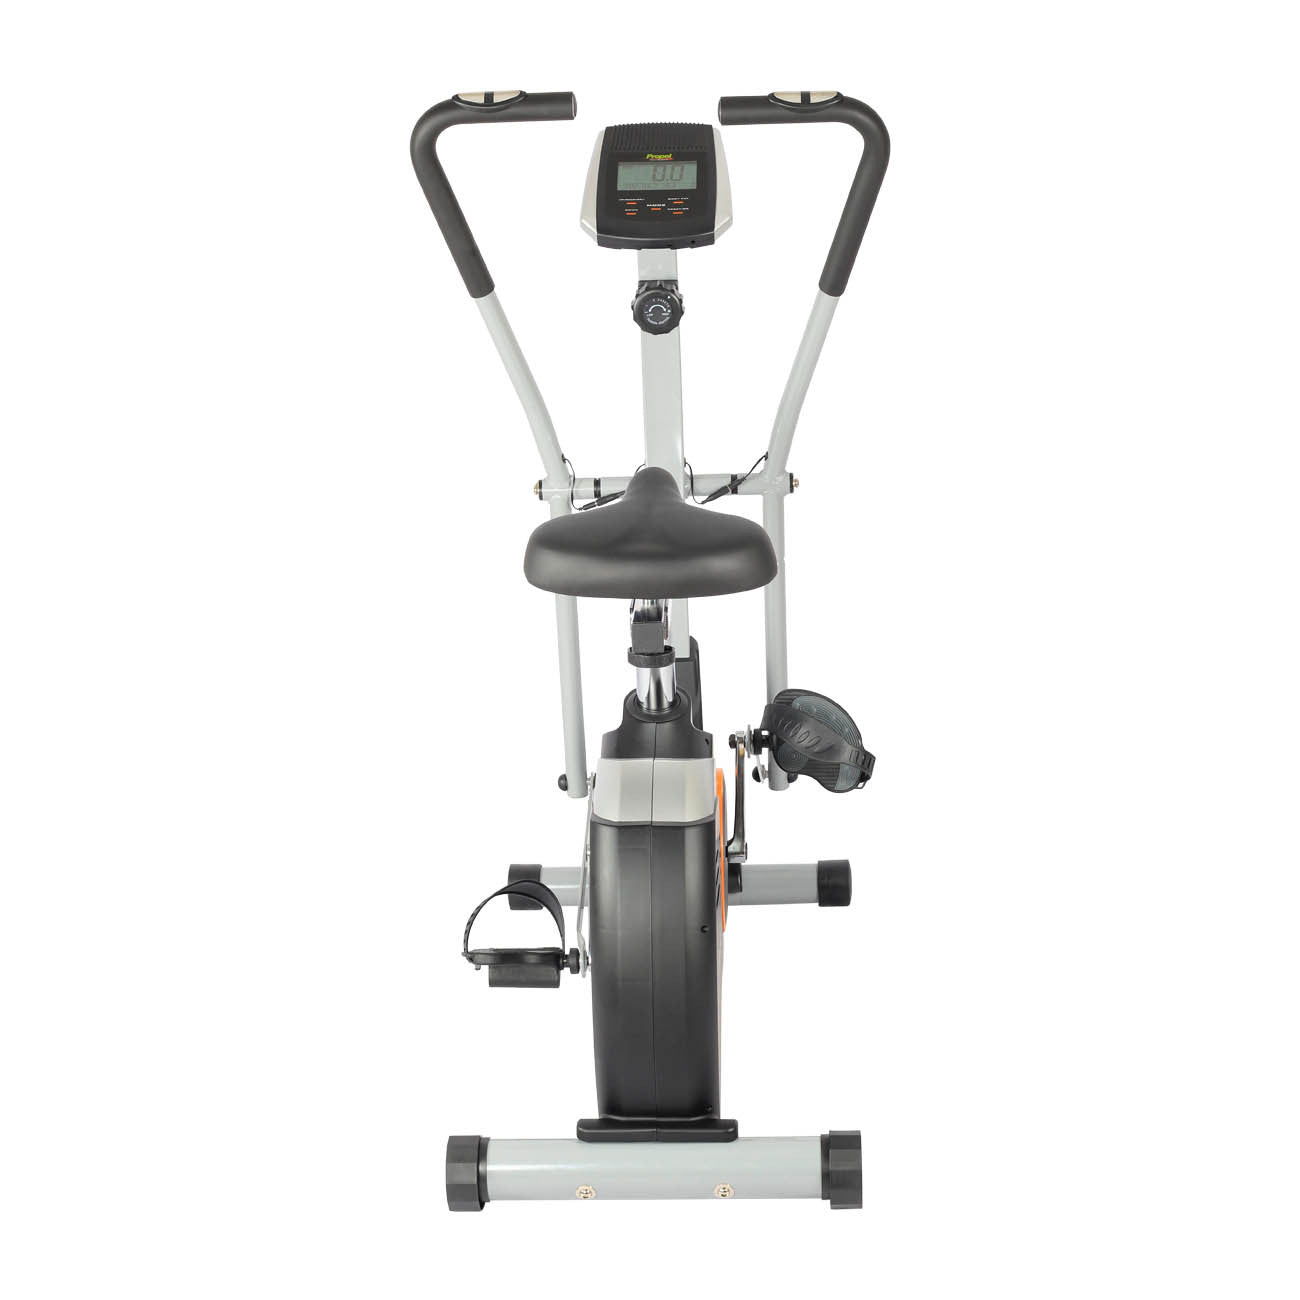 Propel Cross Trainer With Seat For Elderly People